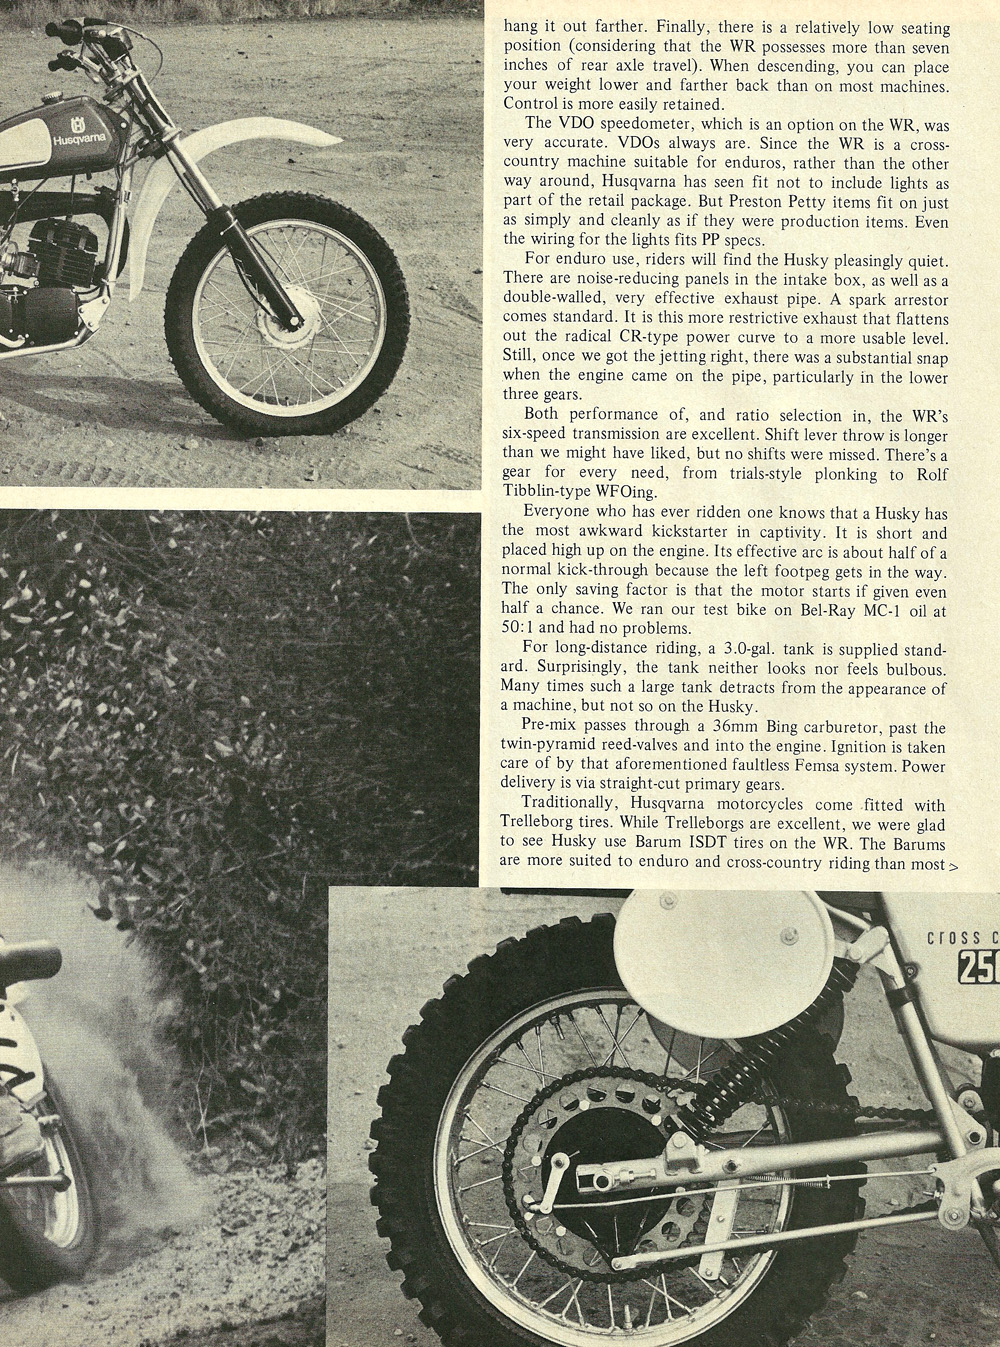 1976 Husqvarna 250WR road test 05.jpg